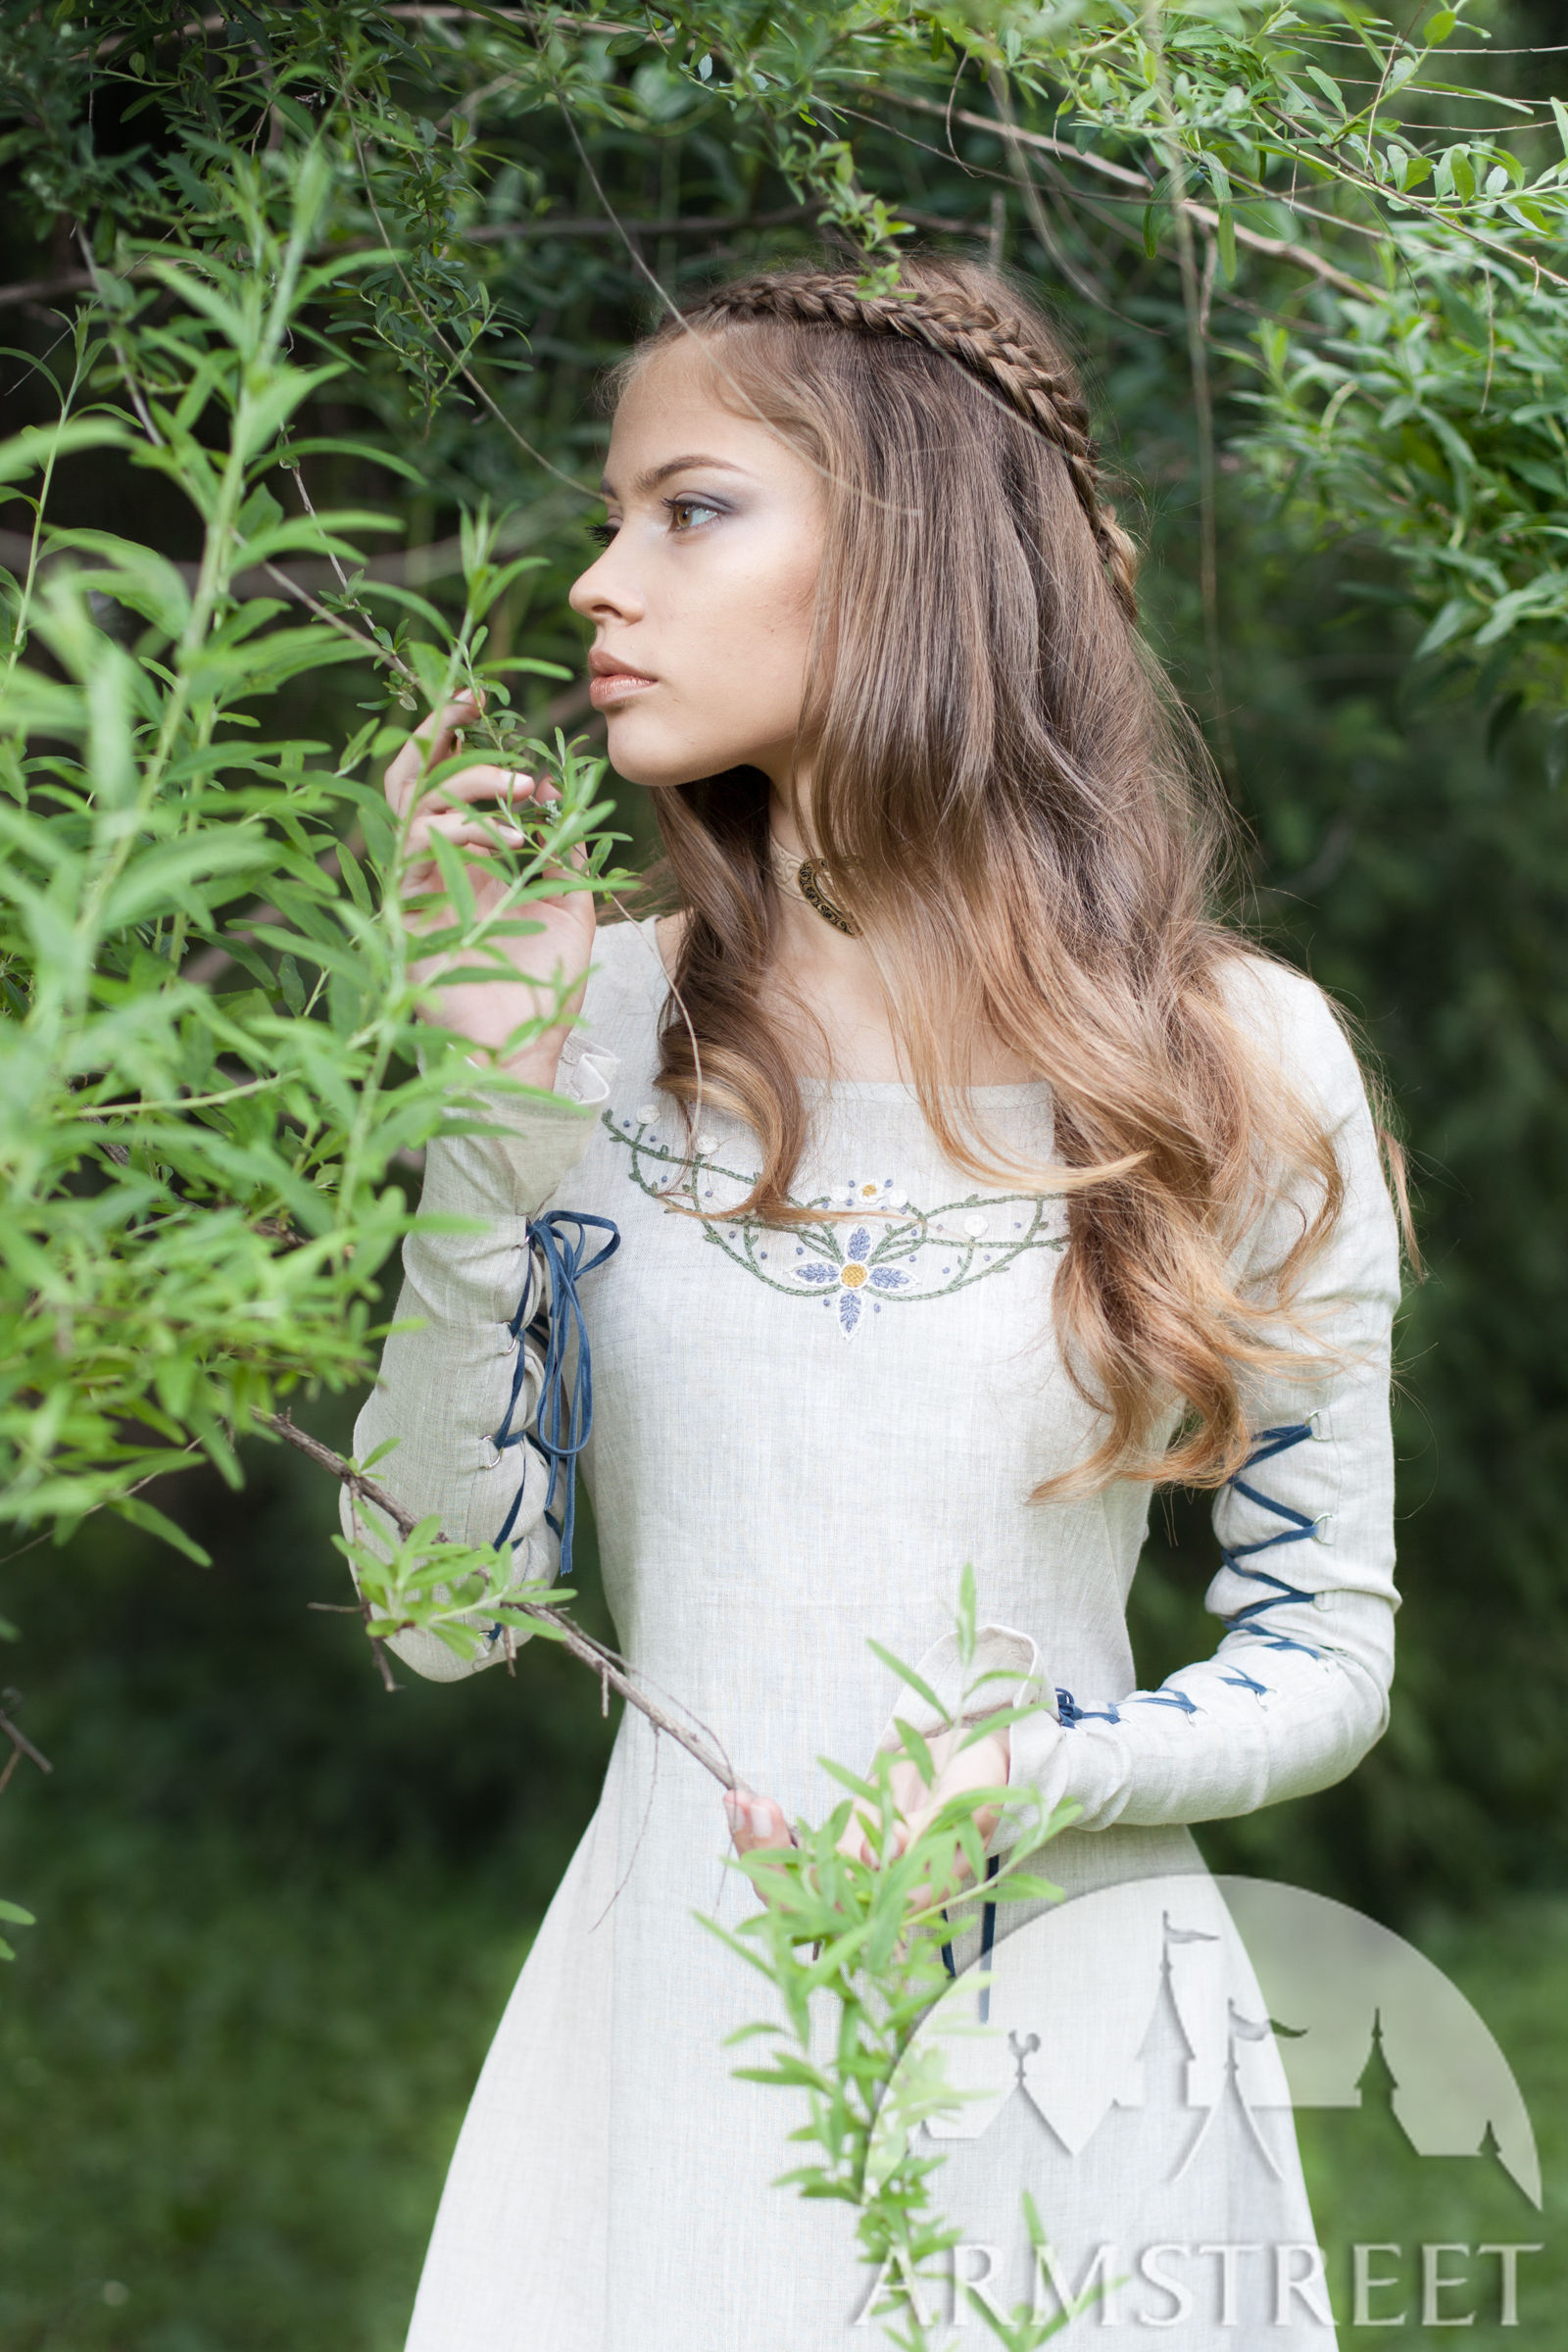 �fairy tale� linen dress available in green flax linen